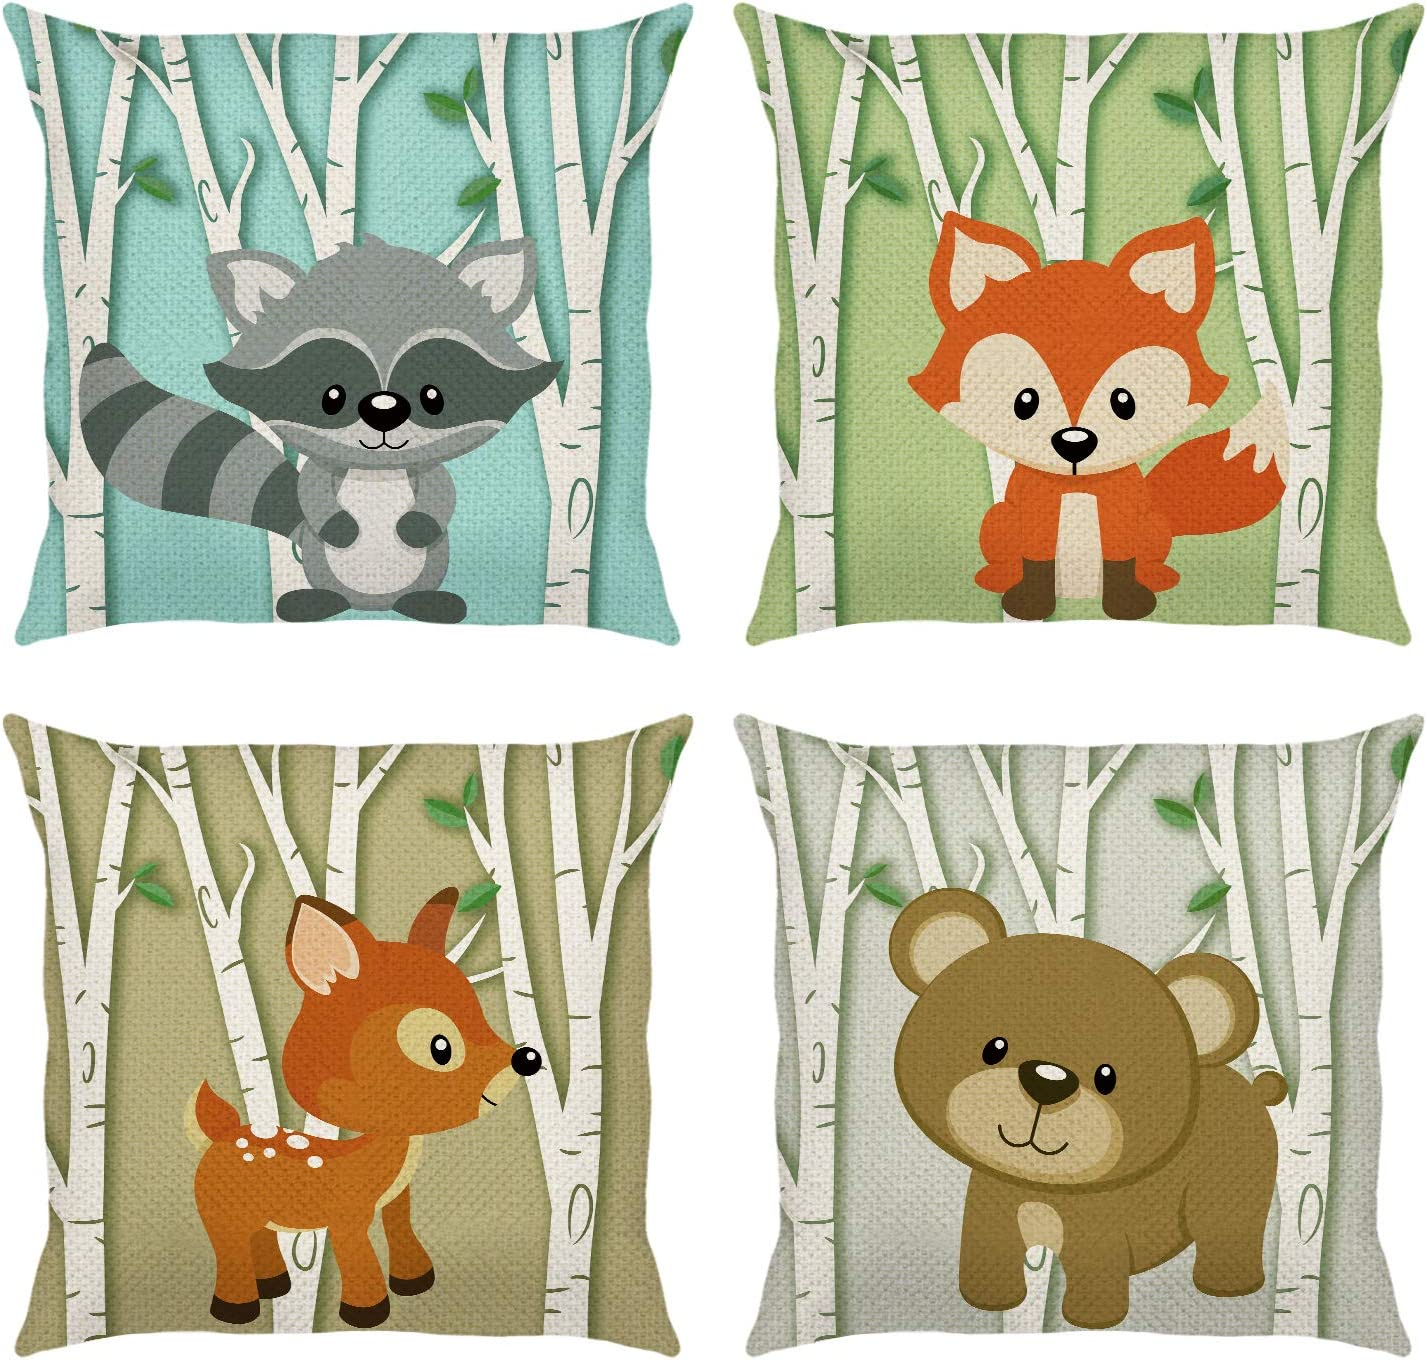 Bonhause Forest Animals Throw Pillow Covers 18 x 18 Inch Set of 4 Deer Fox Birch Tree Decorative Throw Pillow Cases Cotton Linen Outdoor Cushion Covers for Sofa Couch Kids Baby Nursery Room Decor